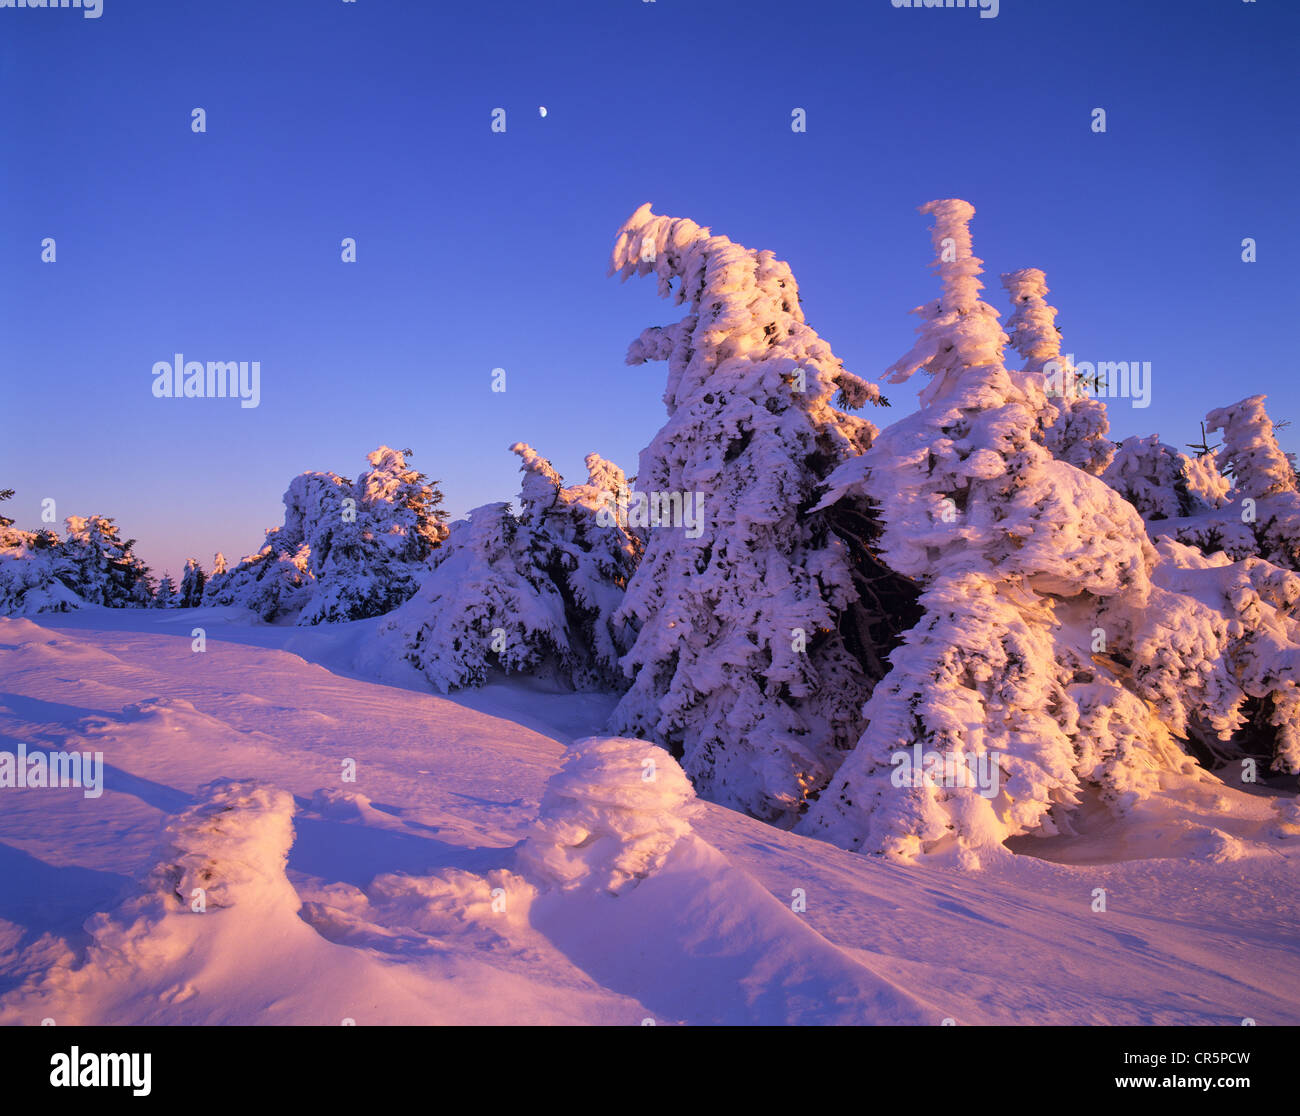 Snow-covered spruce trees on Brocken Mountain at sunset with the moon in the sky, Brocken, Harz National Park, Saxony - Stock Image